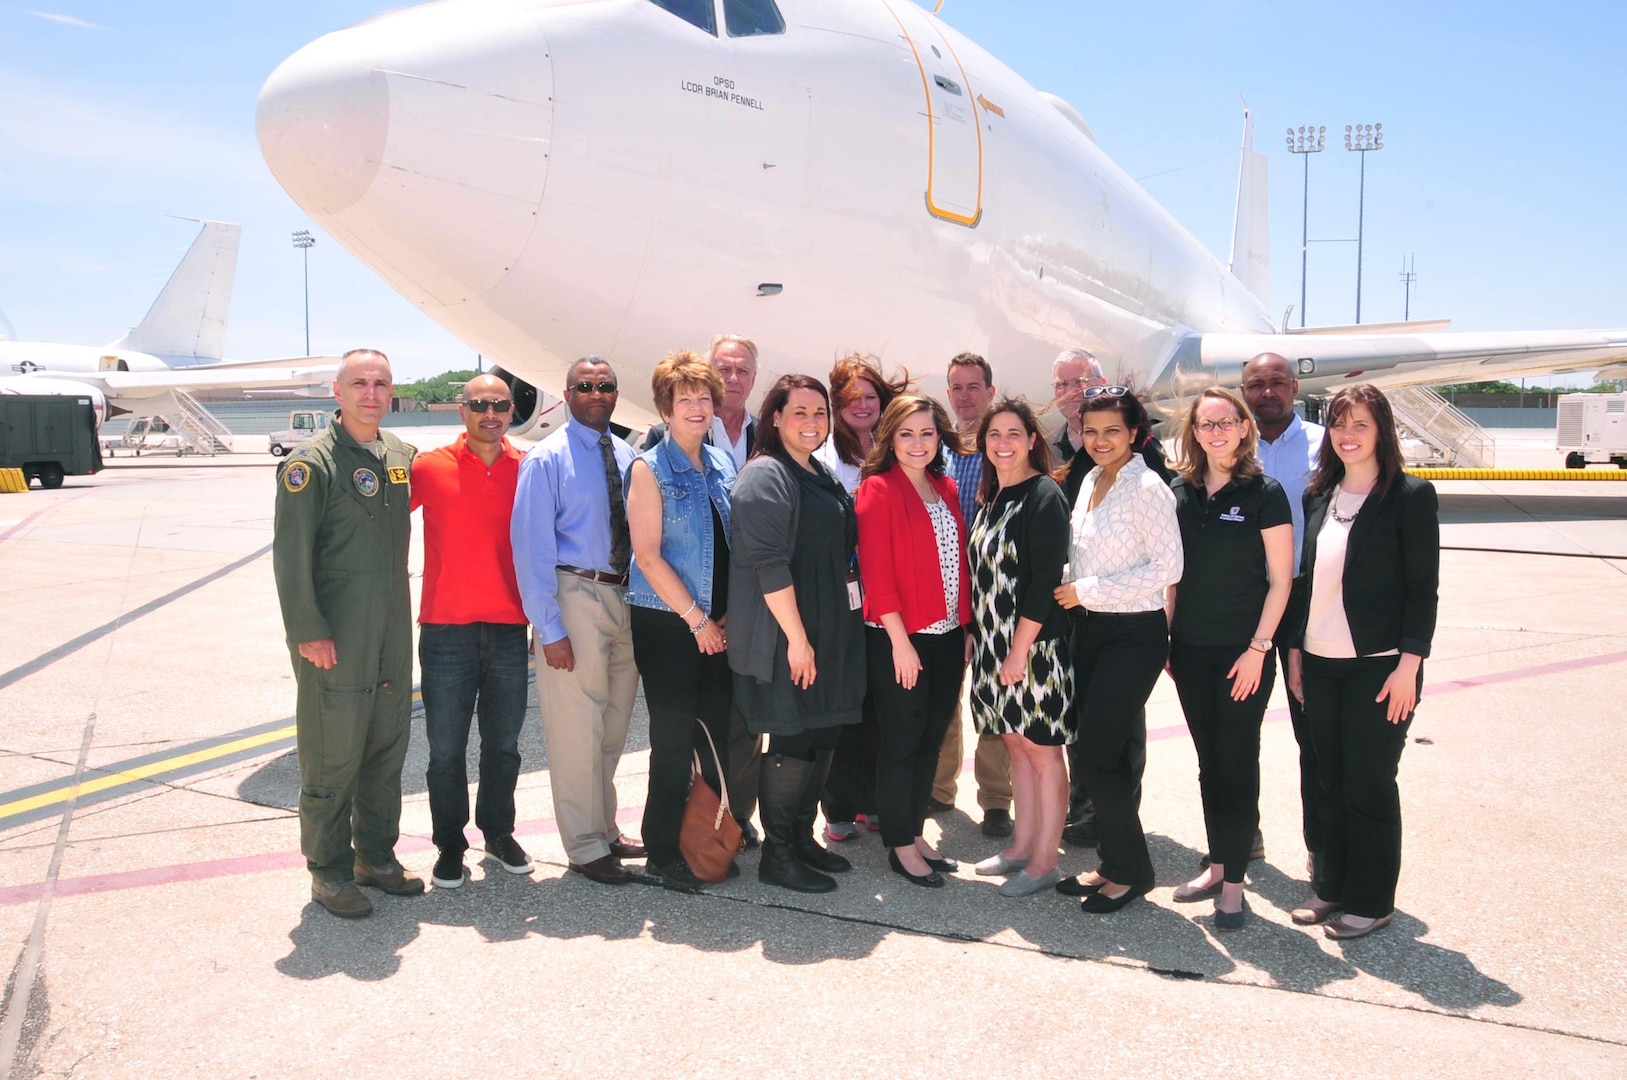 U.S. Air Force Col. Lloyd Buzzell, U.S. Strategic Command (USSTRATCOM) global watch division chief (left), poses for a photo with University of Nebraska Omaha (UNO) Executive Master of Business Administration (EMBA) program participants, alumni and leaders in front of an E-6B Airborne Command Post (ABNCP) aircraft at Offutt Air Force Base, Neb., June 3, 2016. While here, the visiting group toured USSTRATCOM's global operations center and the E-6B ABNCP aircraft, and received a command mission briefing from U.S. Air Force Maj. Gen. Richard J. Evans III, mobilization assistant to the USSTRATCOM deputy commander (not pictured). One of nine DoD unified combatant commands, USSTRATCOM has global strategic missions, assigned through the Unified Command Plan, which include strategic deterrence; space operations; cyberspace operations; joint electronic warfare; global strike; missile defense; intelligence, surveillance and reconnaissance; combating weapons of mass destruction; and analysis and targeting. (Courtesy photo)